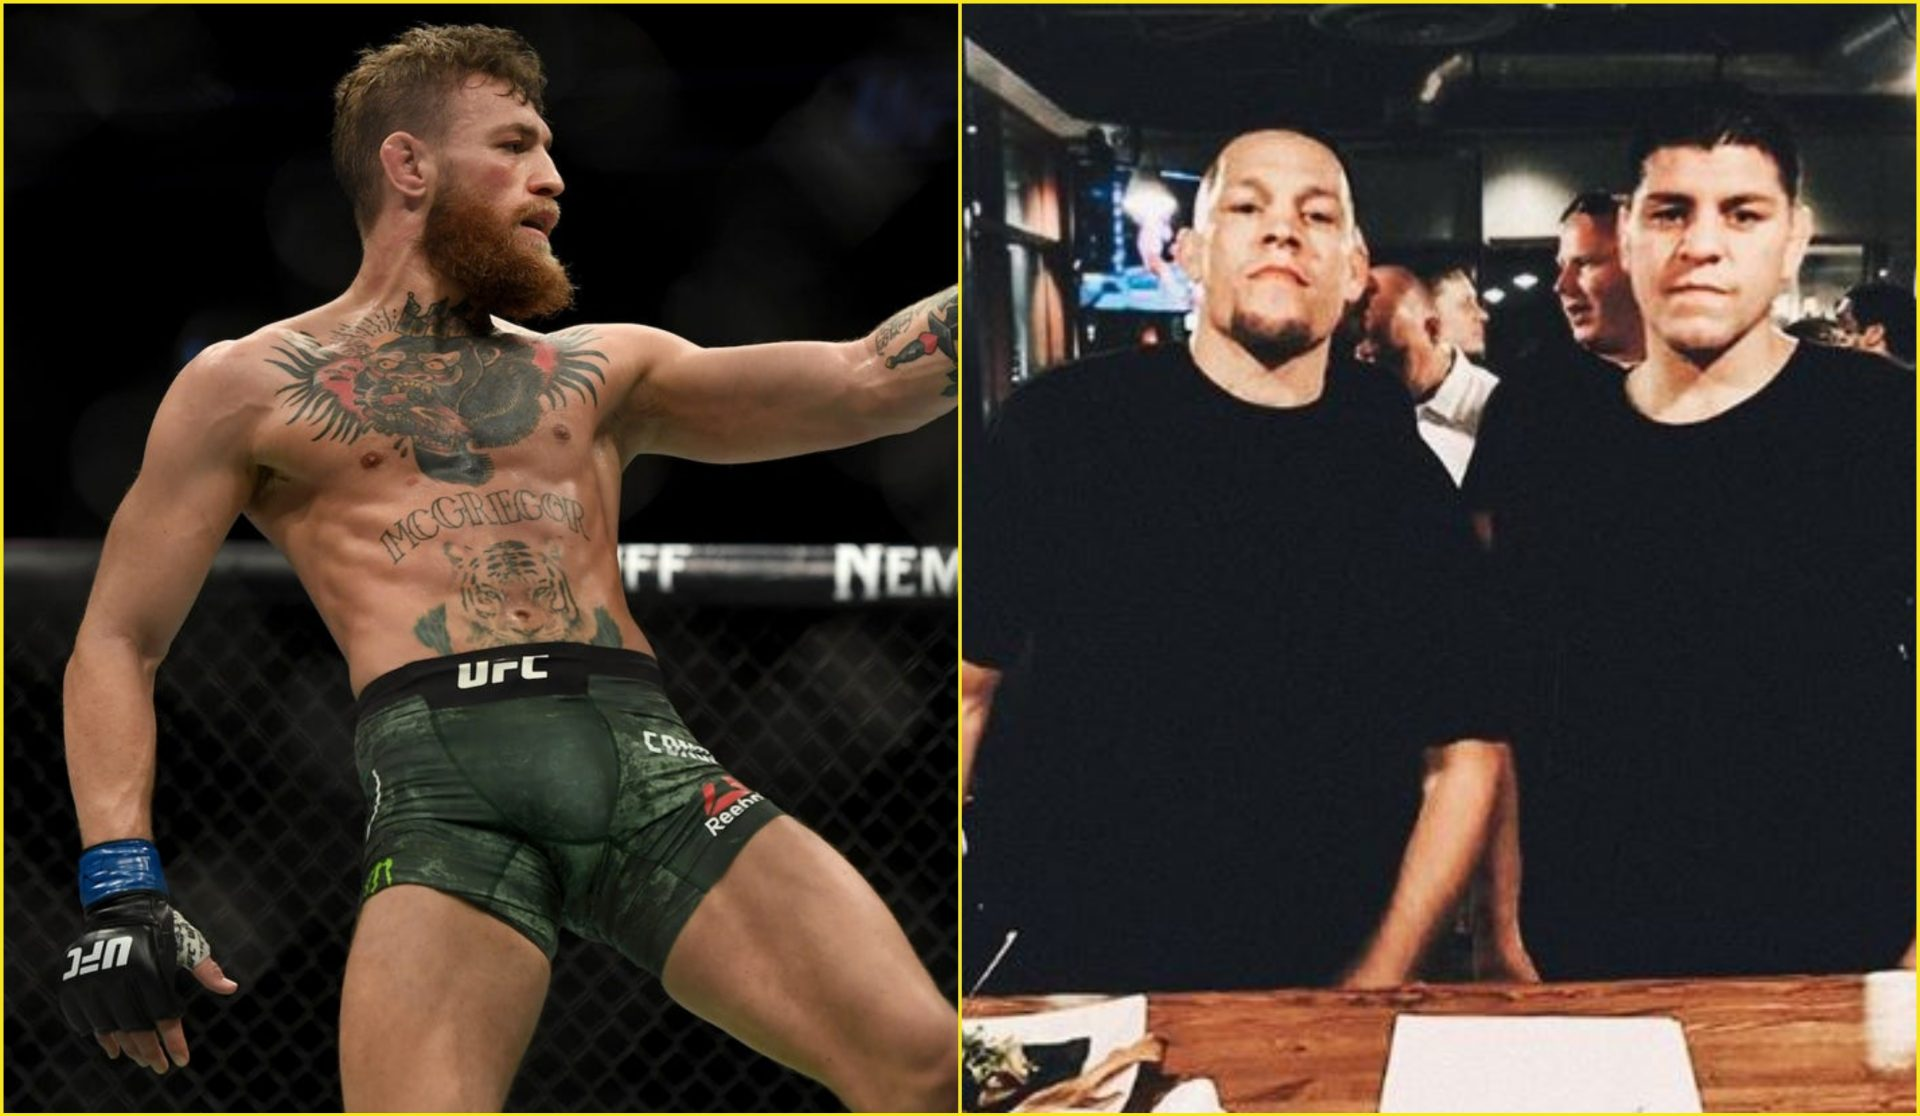 Should Conor McGregor Fight Nick Diaz or Nate Diaz Or Someone Else in the UFC? - diaz